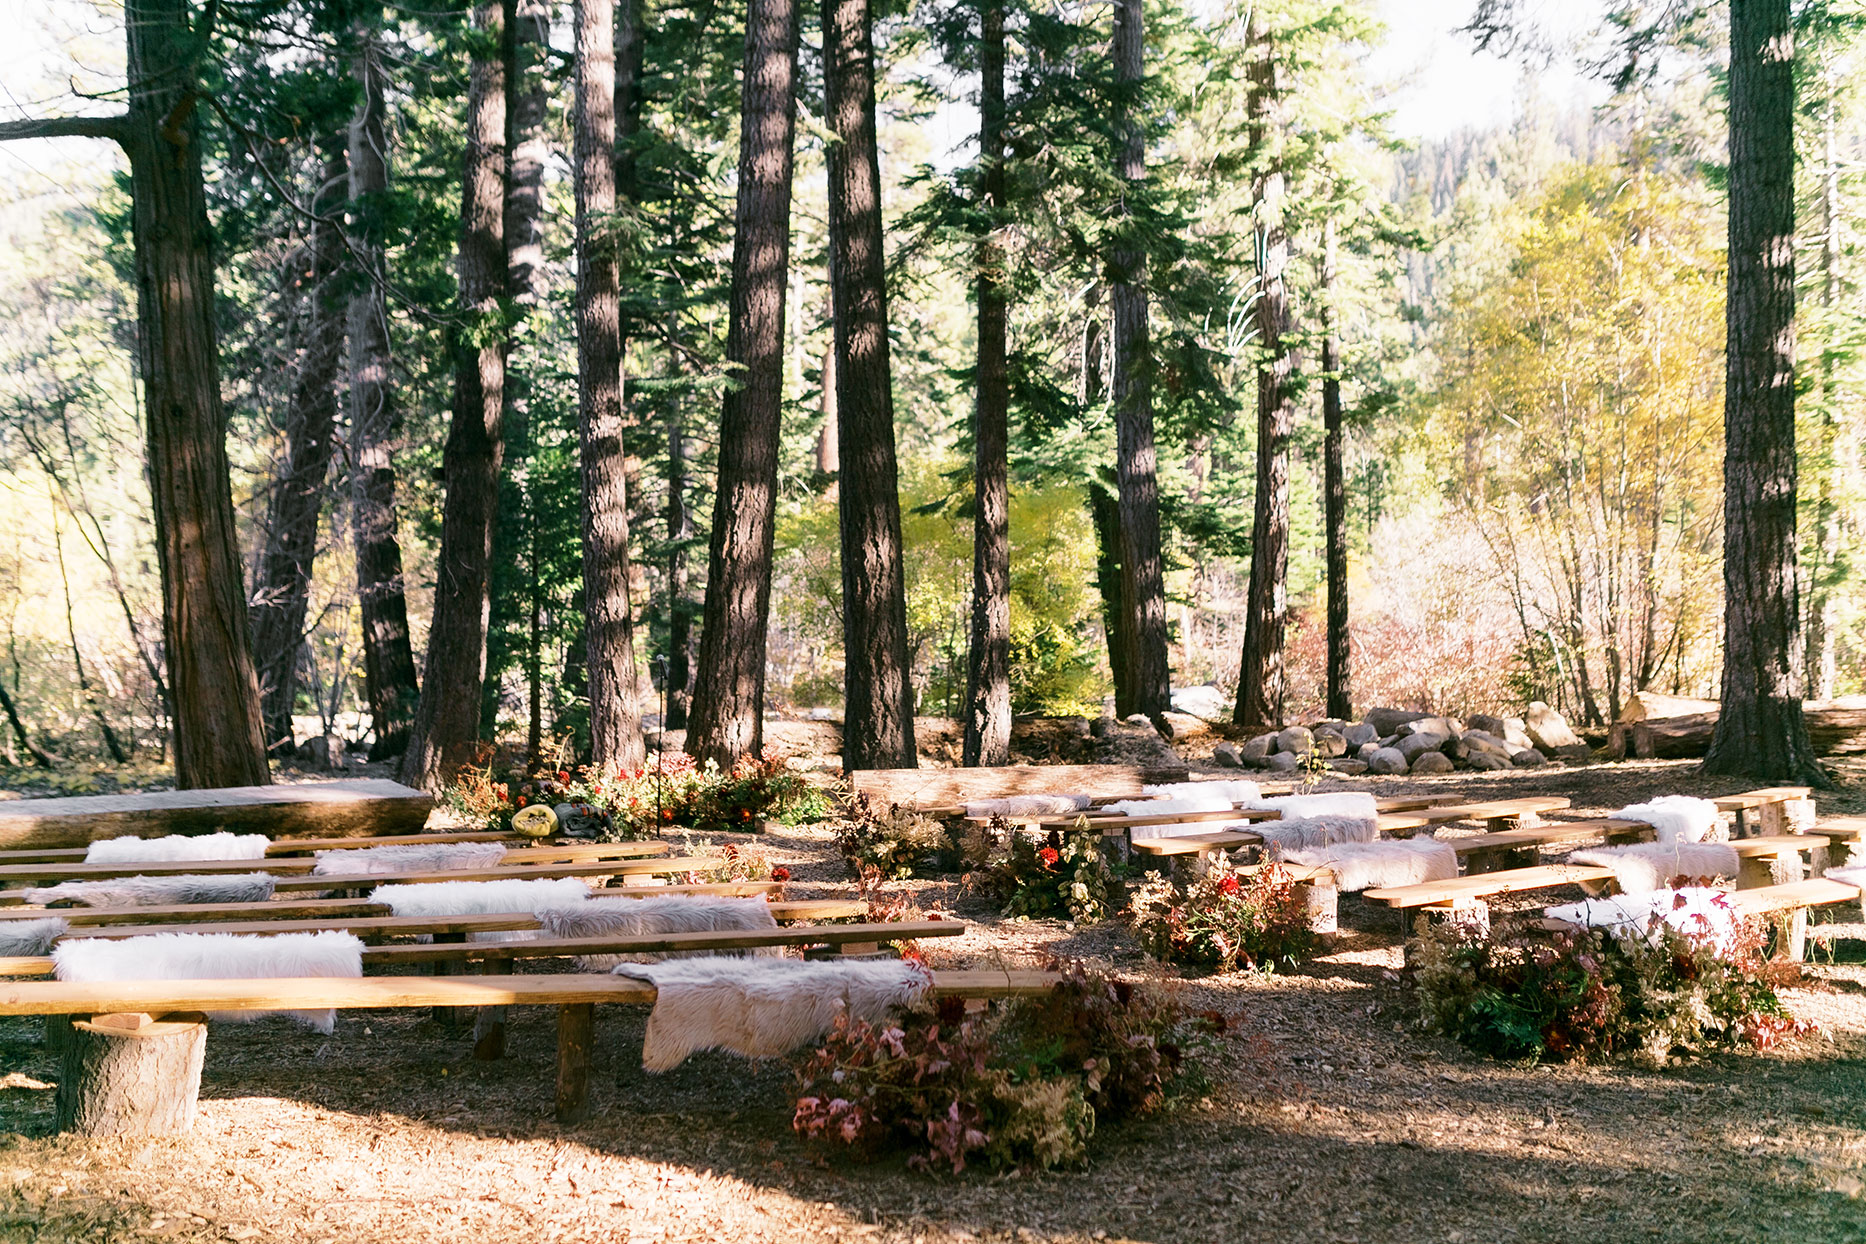 rustic outdoor ceremony space with wooden benches